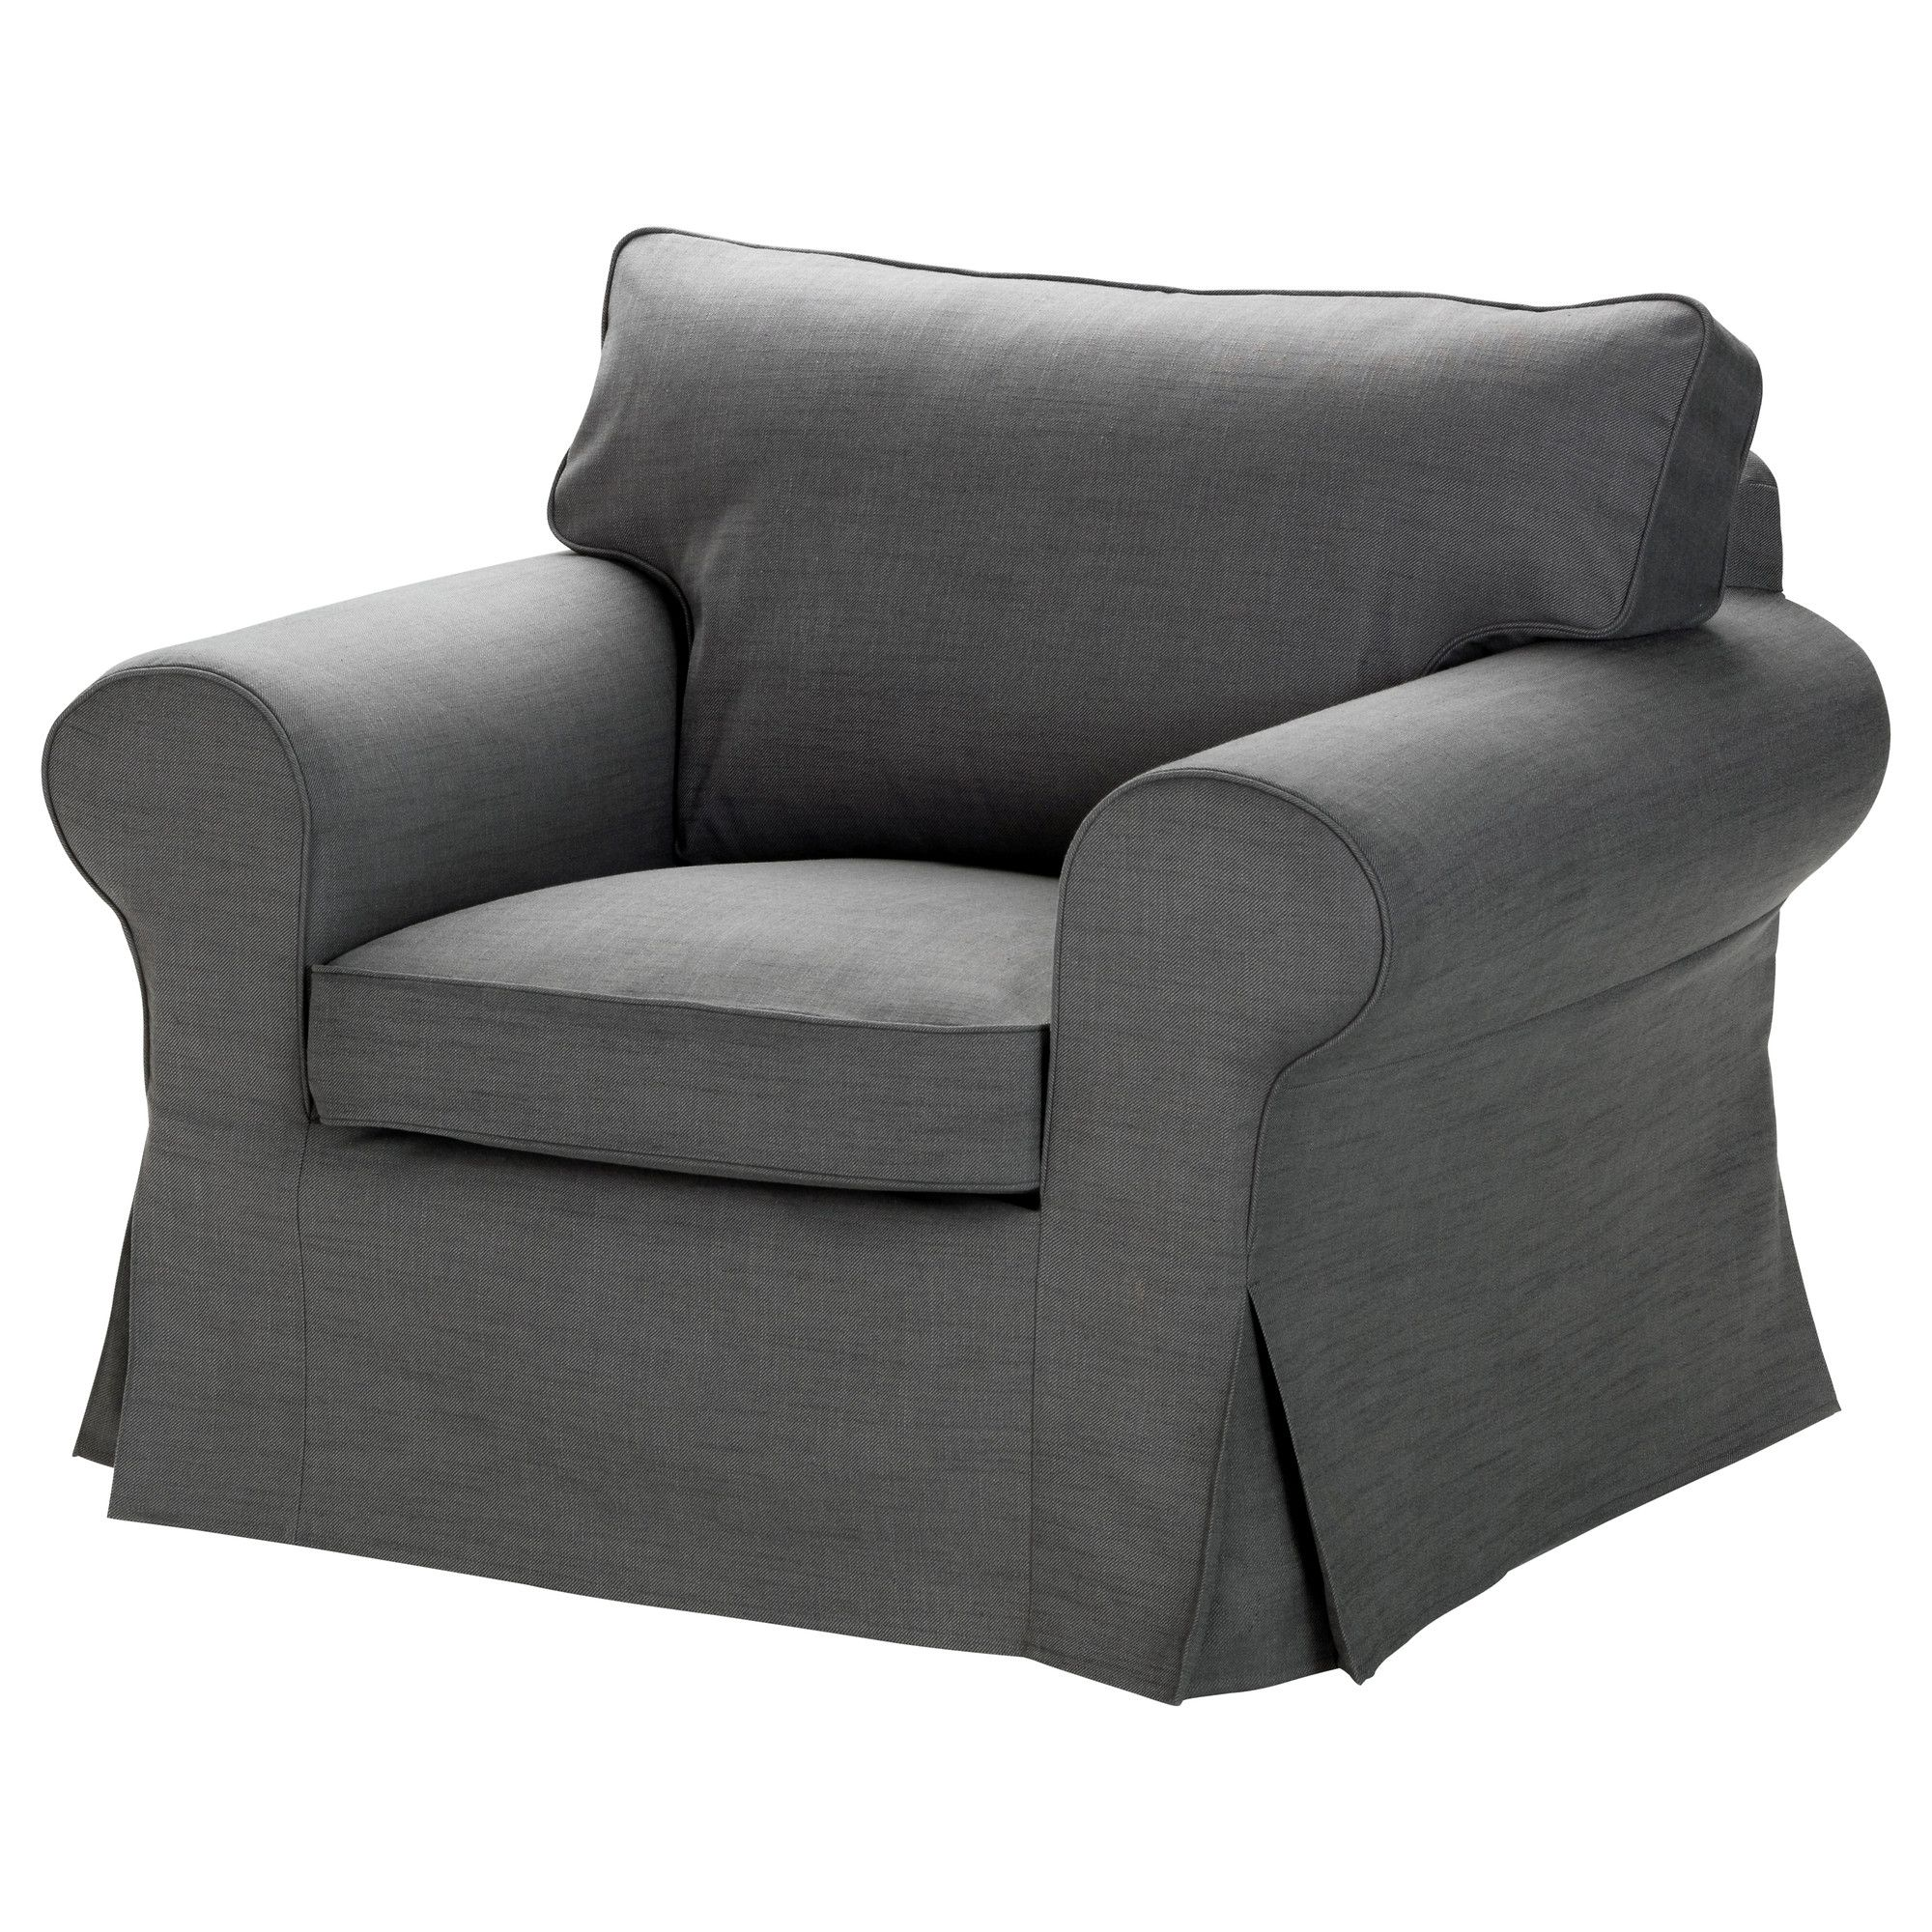 Best Us Furniture And Home Furnishings Slipcovers For 400 x 300